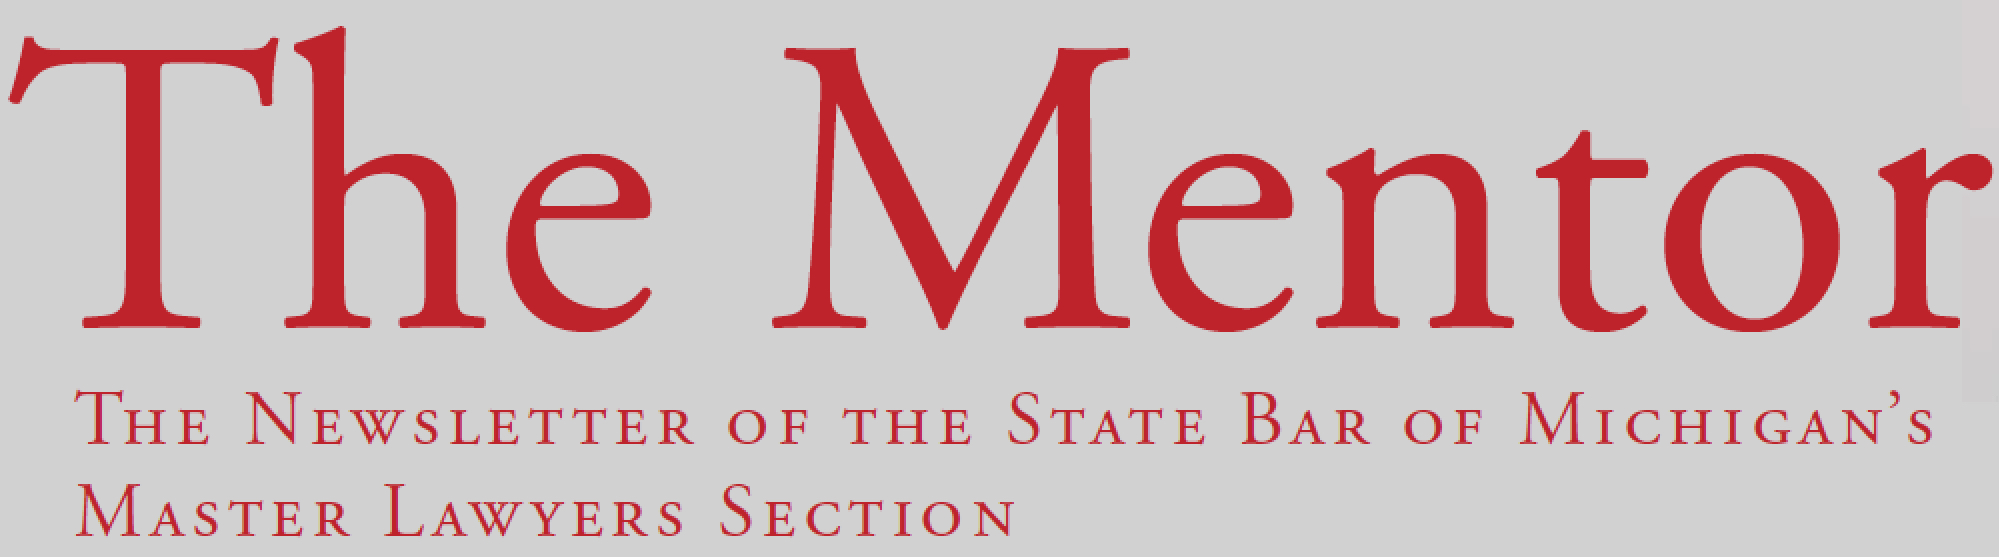 The Mentor, N   ewsletter of the State Bar of Michigan's Master Lawyers Section, Spring 2018.    ©2018. Originally Published in    Law Practice Today   , April 2018, by the American Bar Association. Reproduced with permission. All rights reserved.